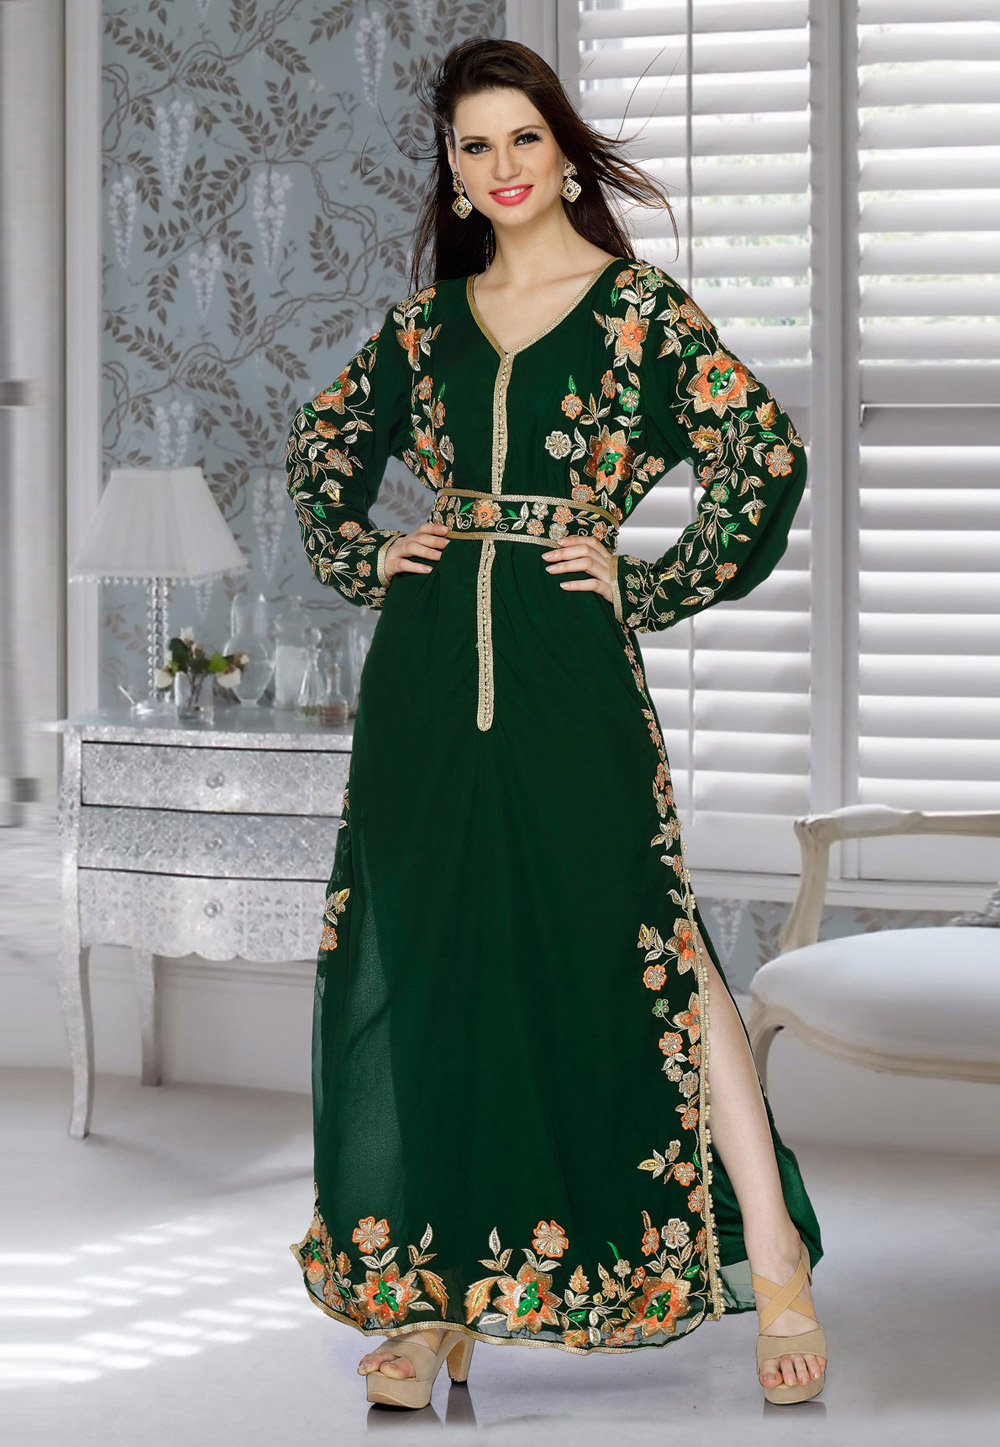 Green Faux Georgette Embroidered Readymade Kaftan 194814